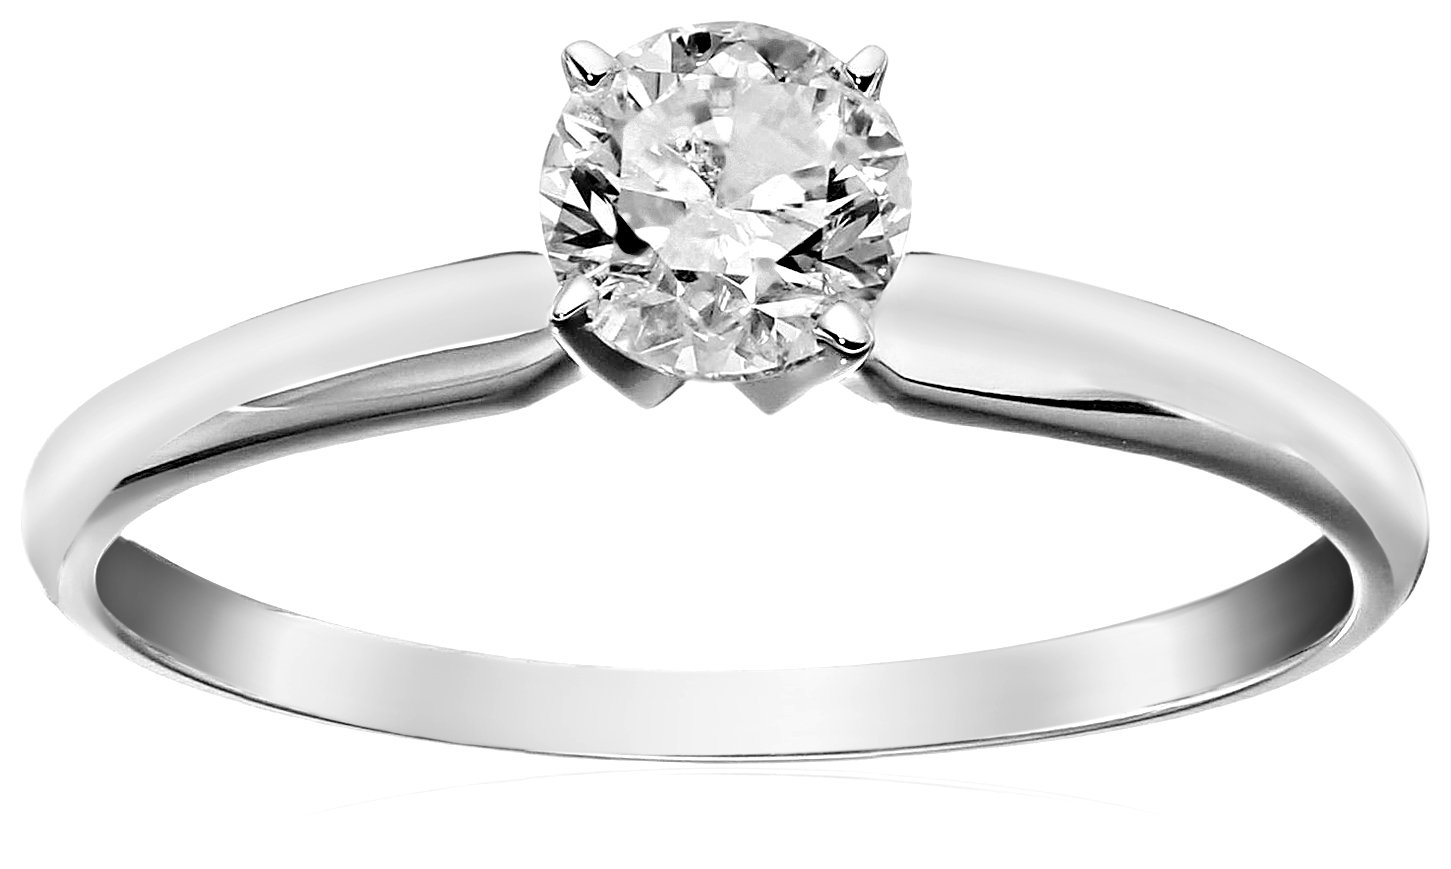 14k Round Solitaire White Gold Engagement Ring (1/2carat, H-I Color, I3 Clarity), Size 6